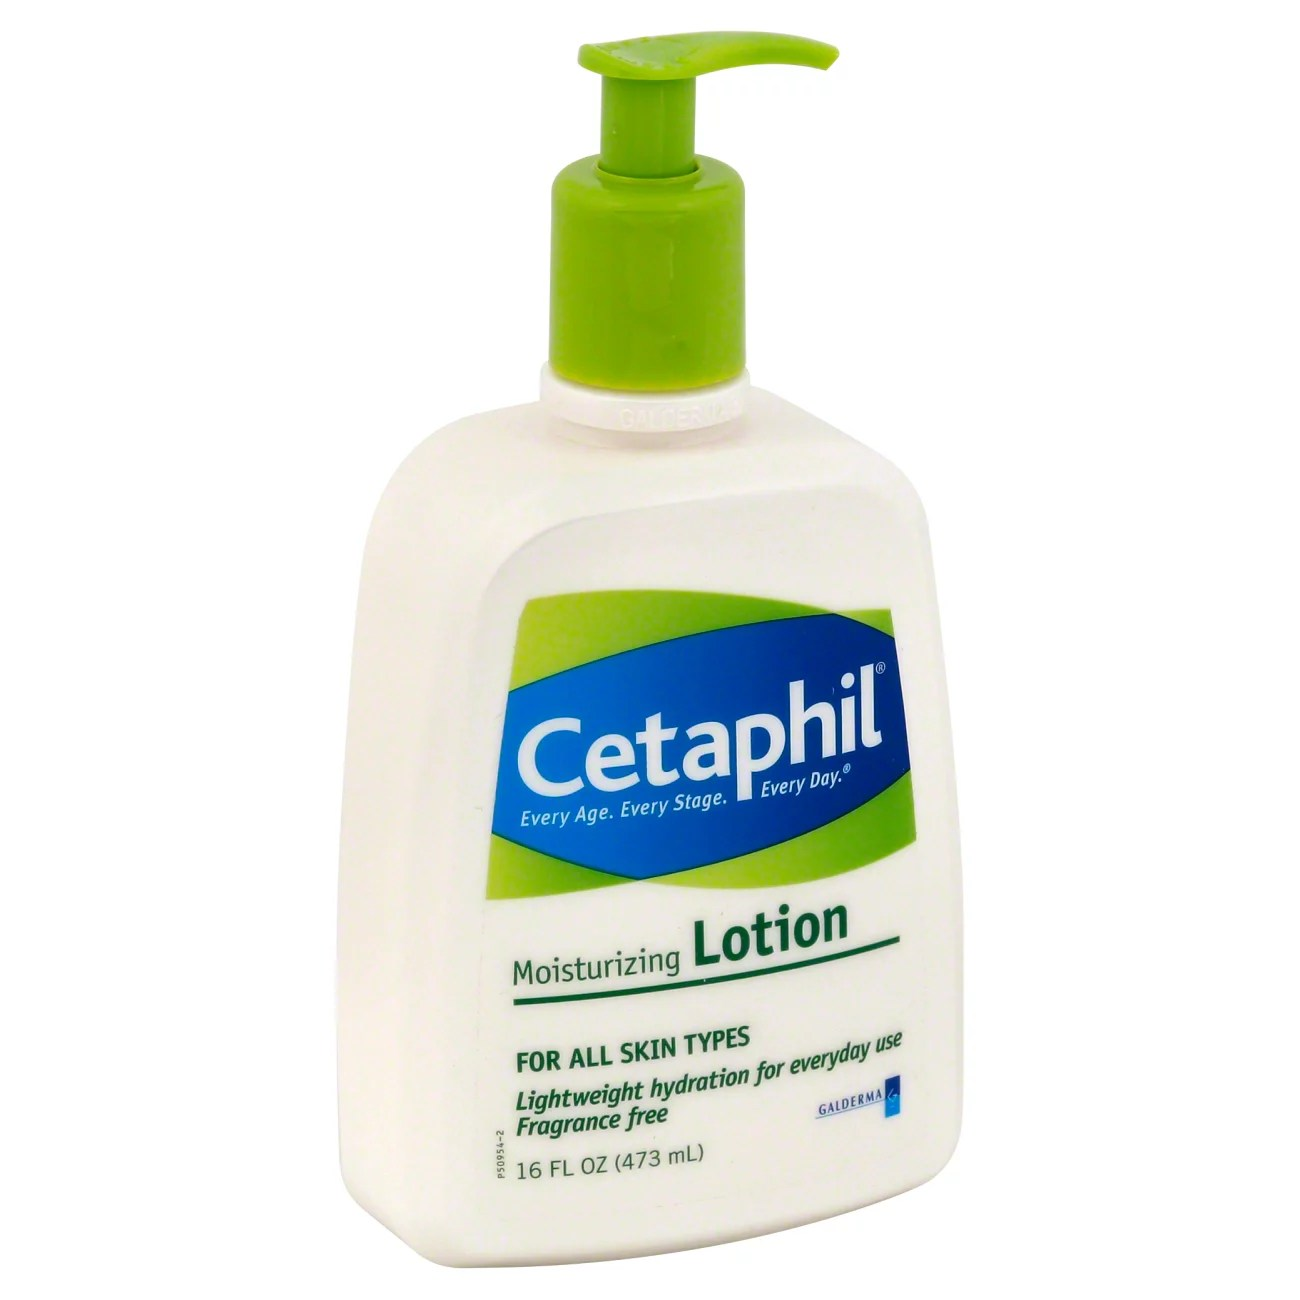 Cetaphil Fragrance Free Moisturizing Lotion For All Skin Types - Shop Body Lotion at H-E-B